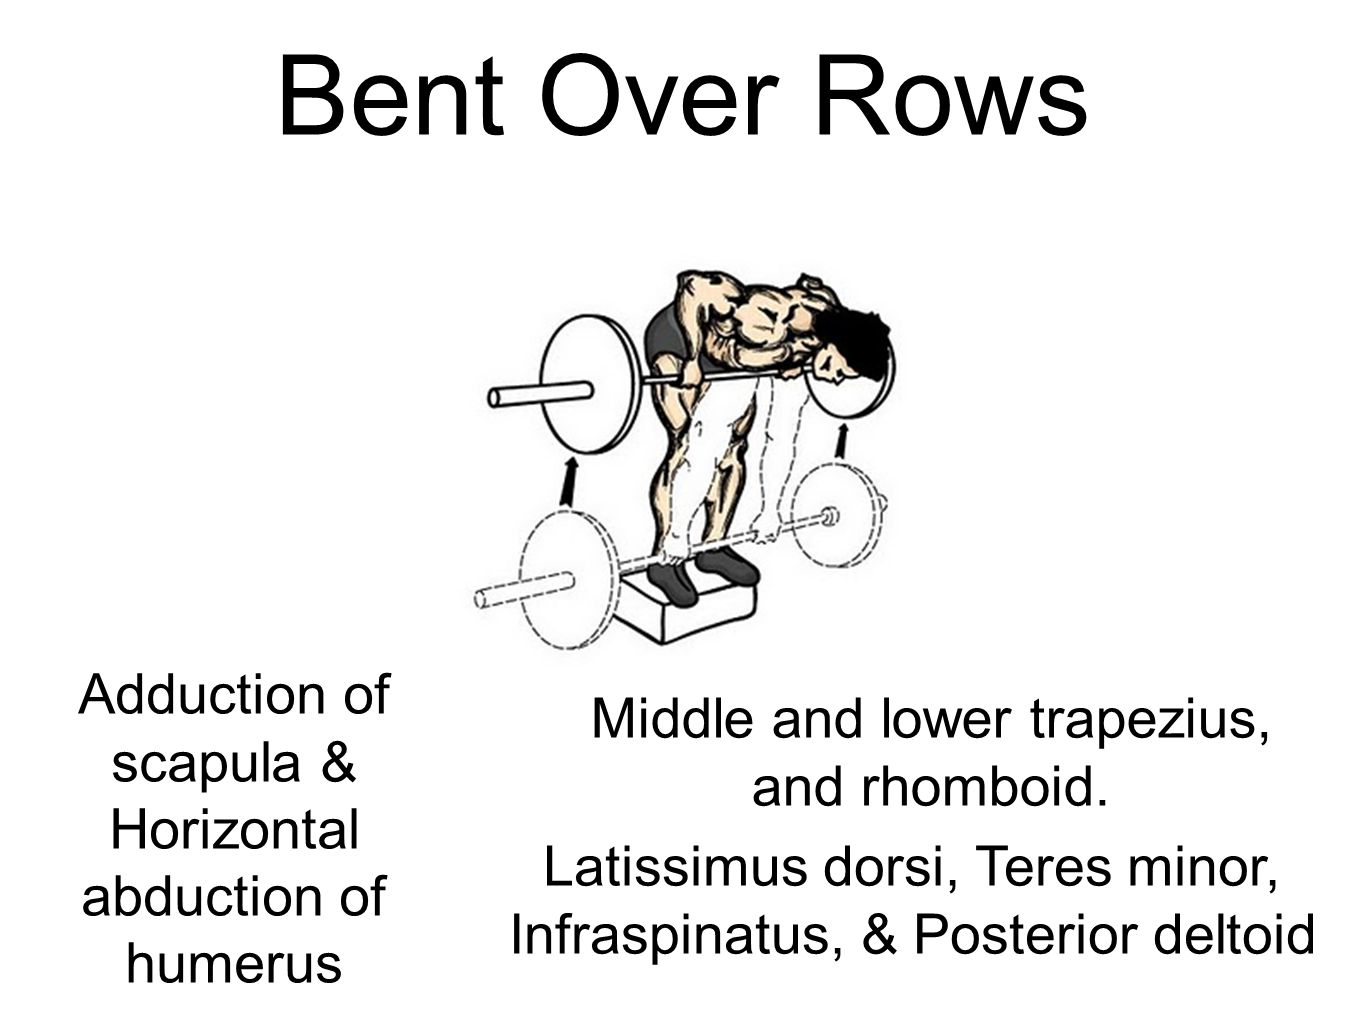 Bent Over Rows Adduction of scapula & Horizontal abduction of humerus